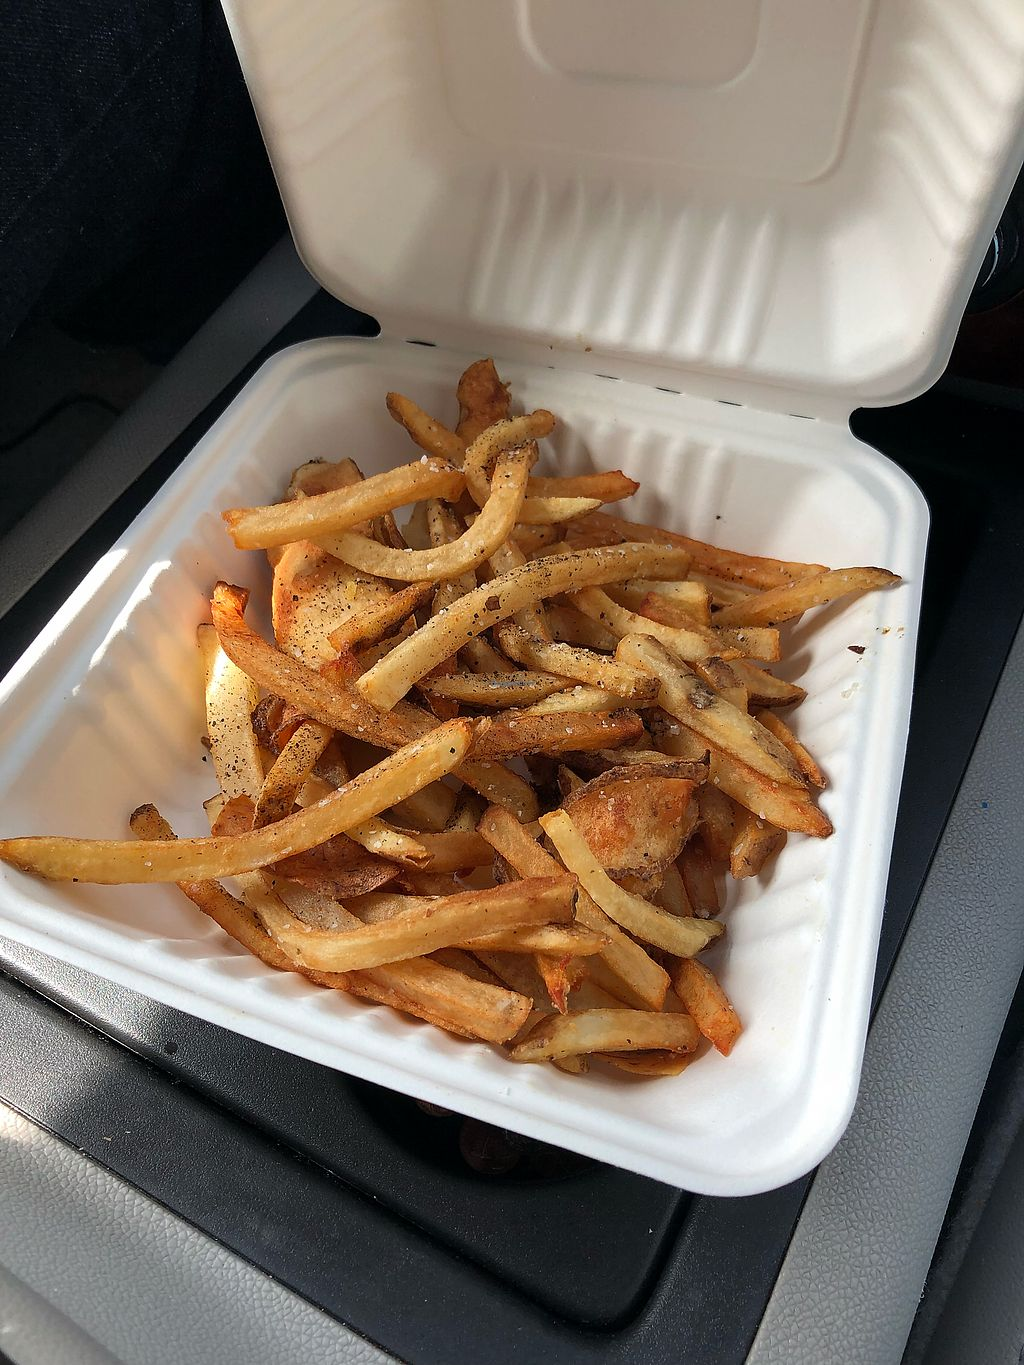 """Photo of Sneaky Pickle  by <a href=""""/members/profile/ShanayshaEvans"""">ShanayshaEvans</a> <br/>Hand cut fries <br/> February 21, 2018  - <a href='/contact/abuse/image/45345/361943'>Report</a>"""